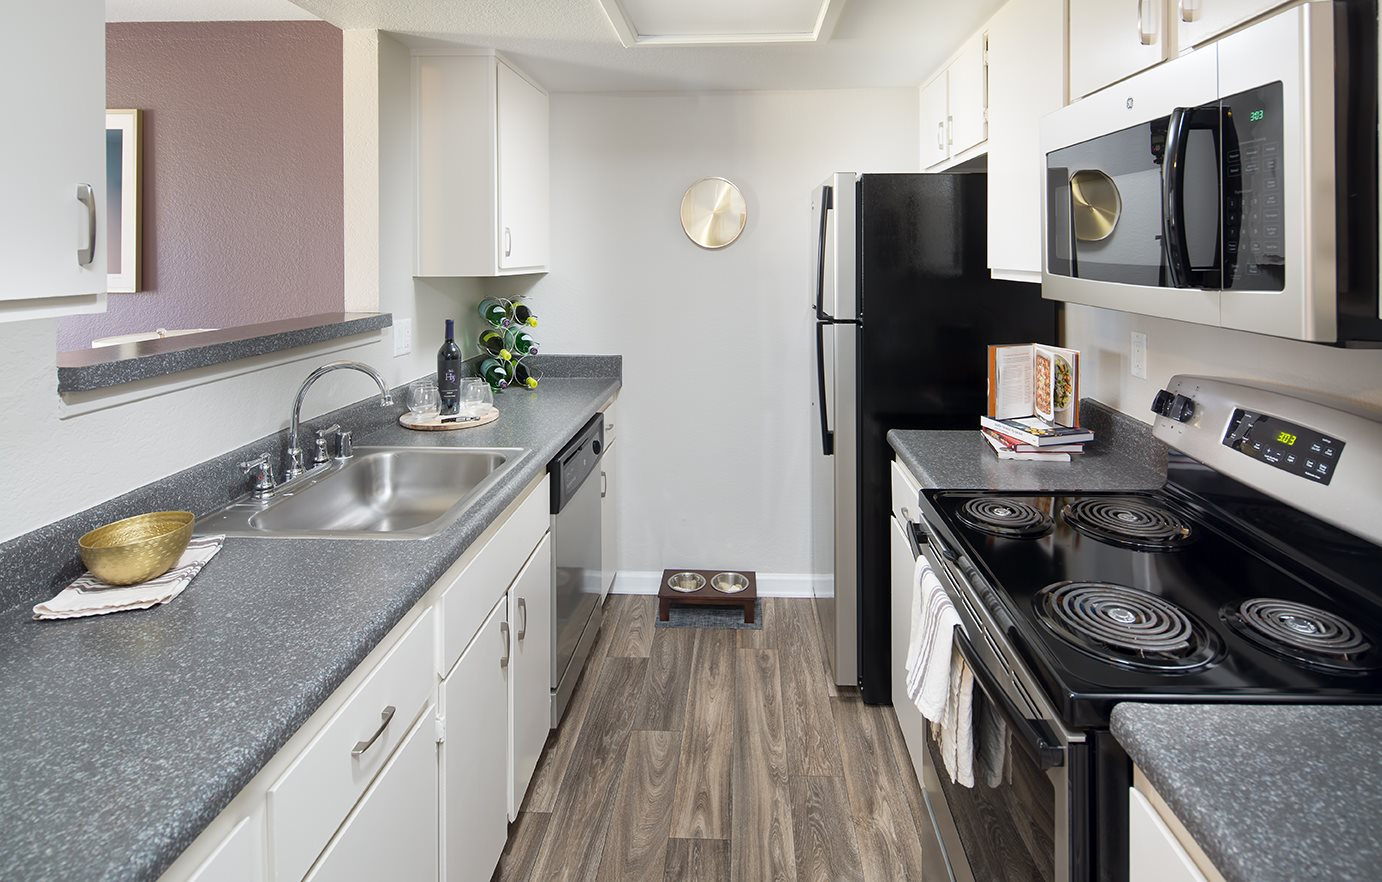 Upgraded kitchen at Sorelle apartments in Moreno Valley, CA